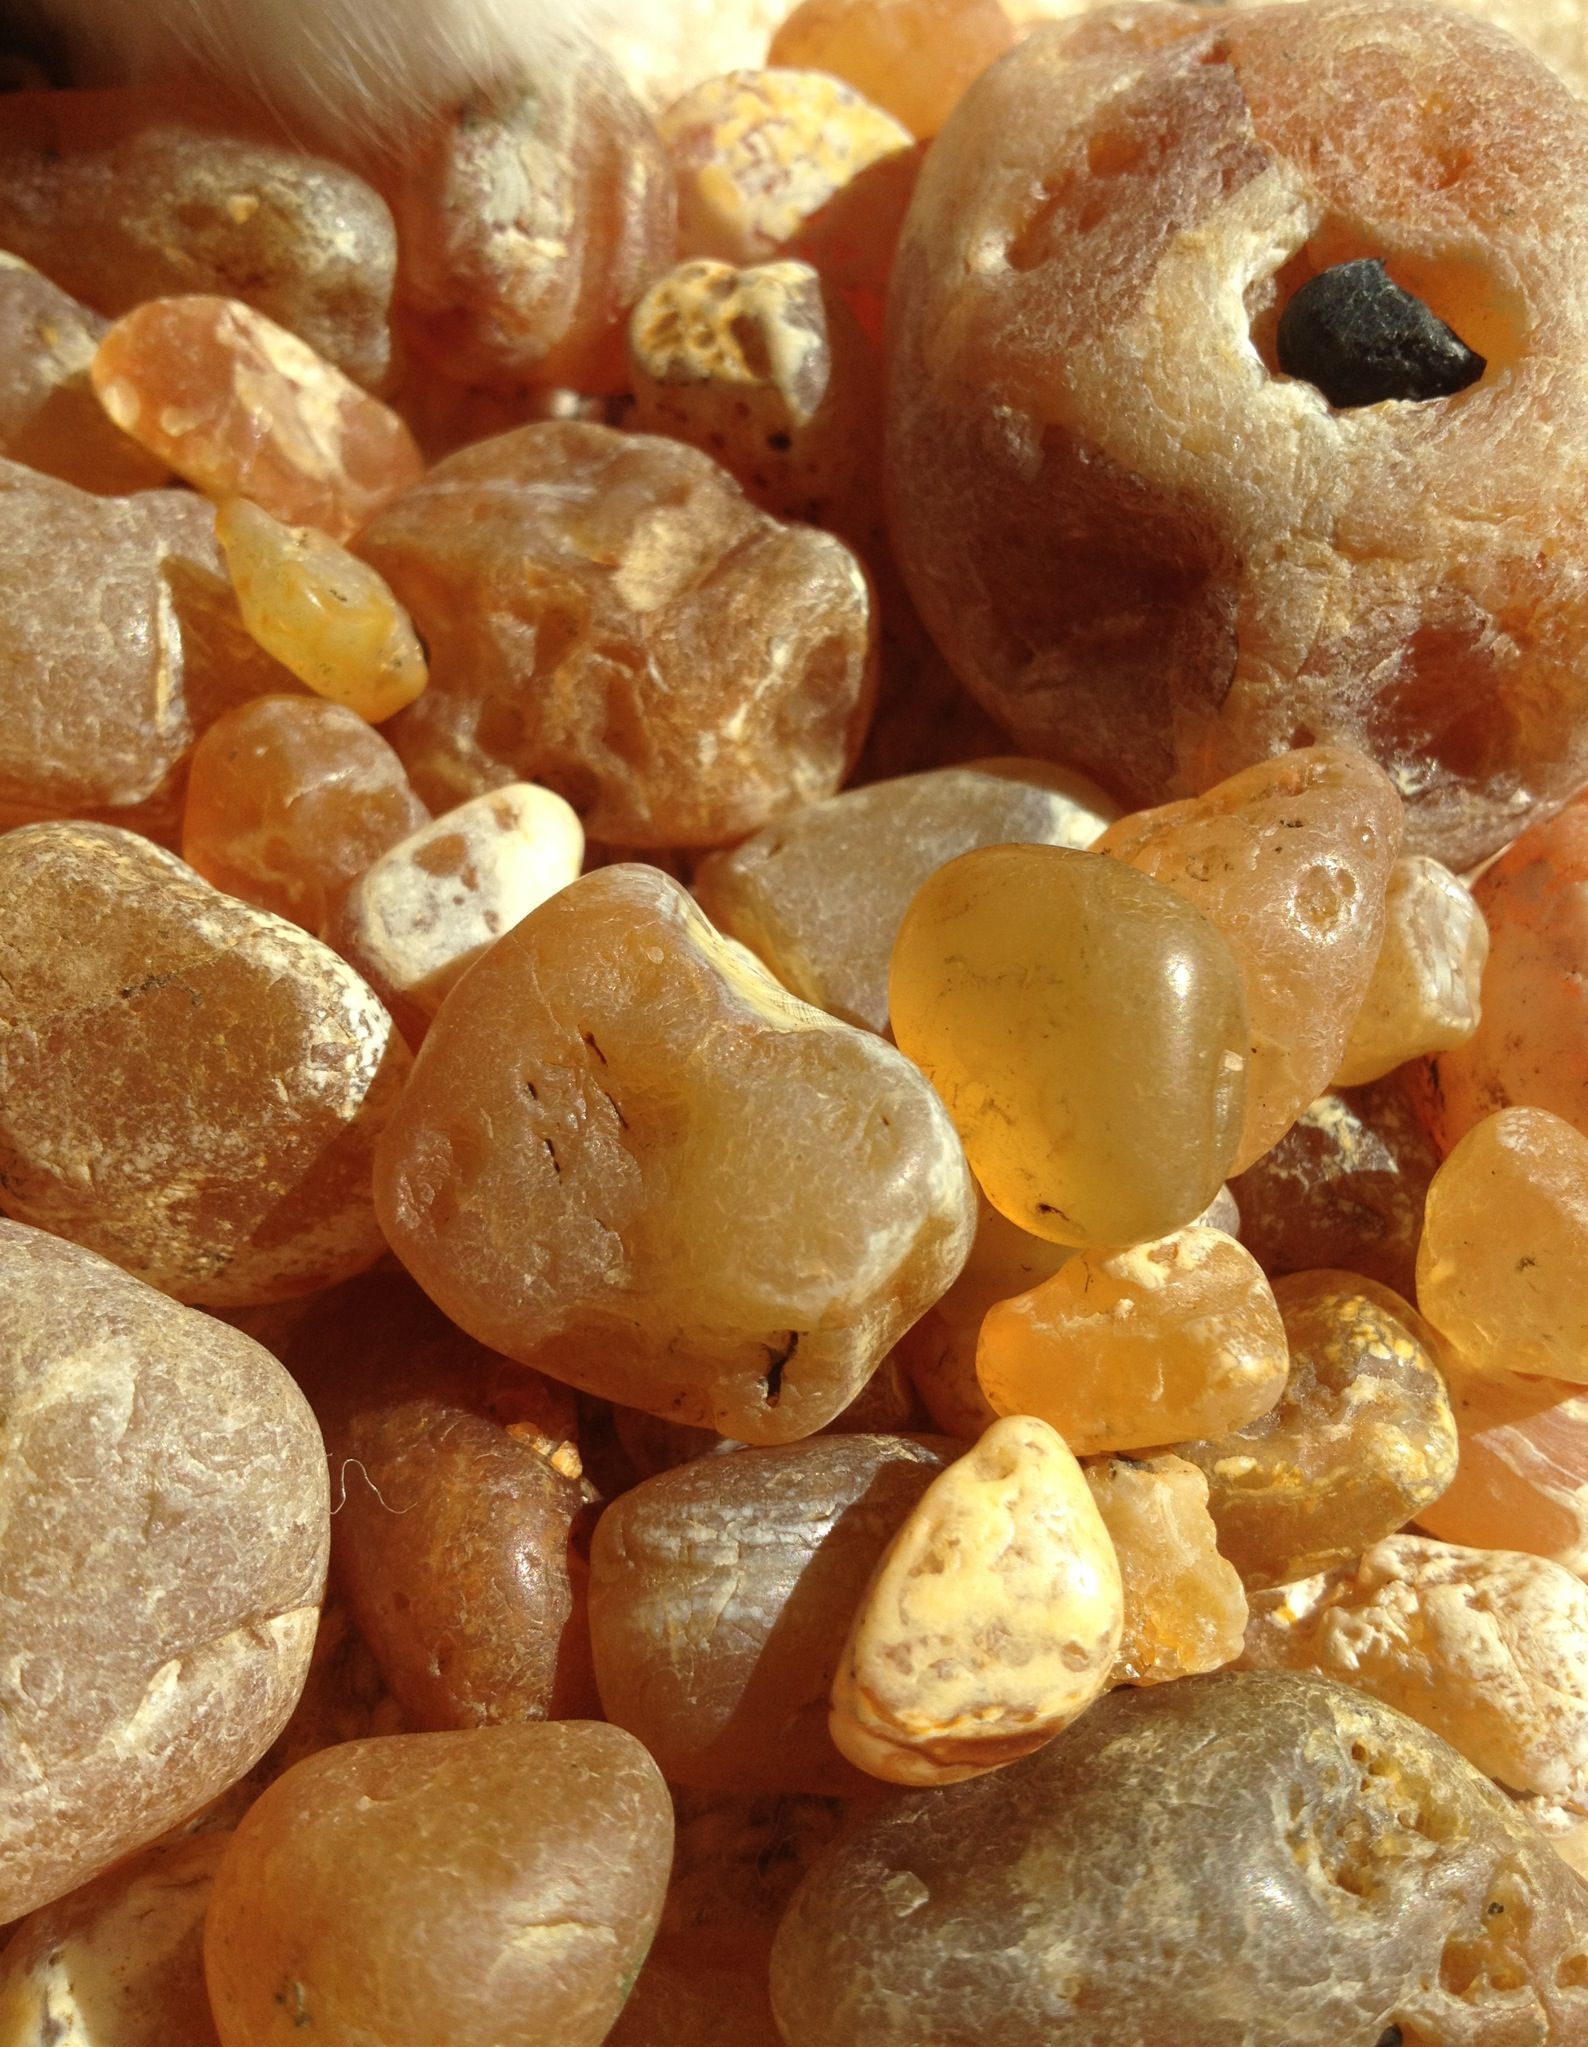 Agates from gleneden beach oregon coast 5 miles south of